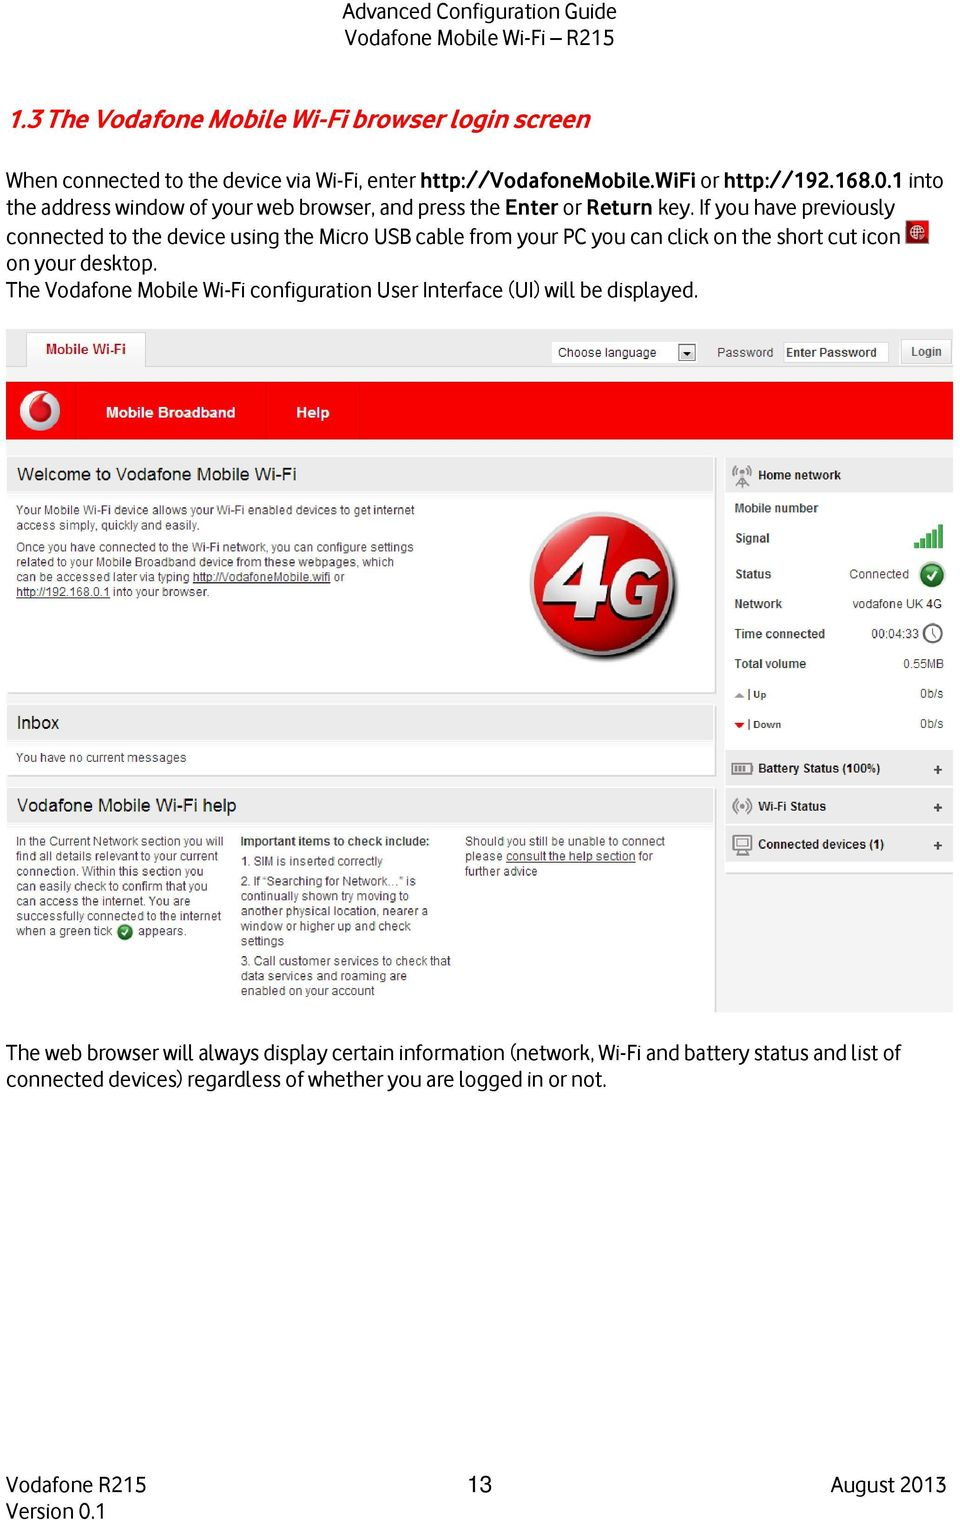 Advanced Configuration Guide  Vodafone Mobile Wi-Fi Vodafone R215 - PDF